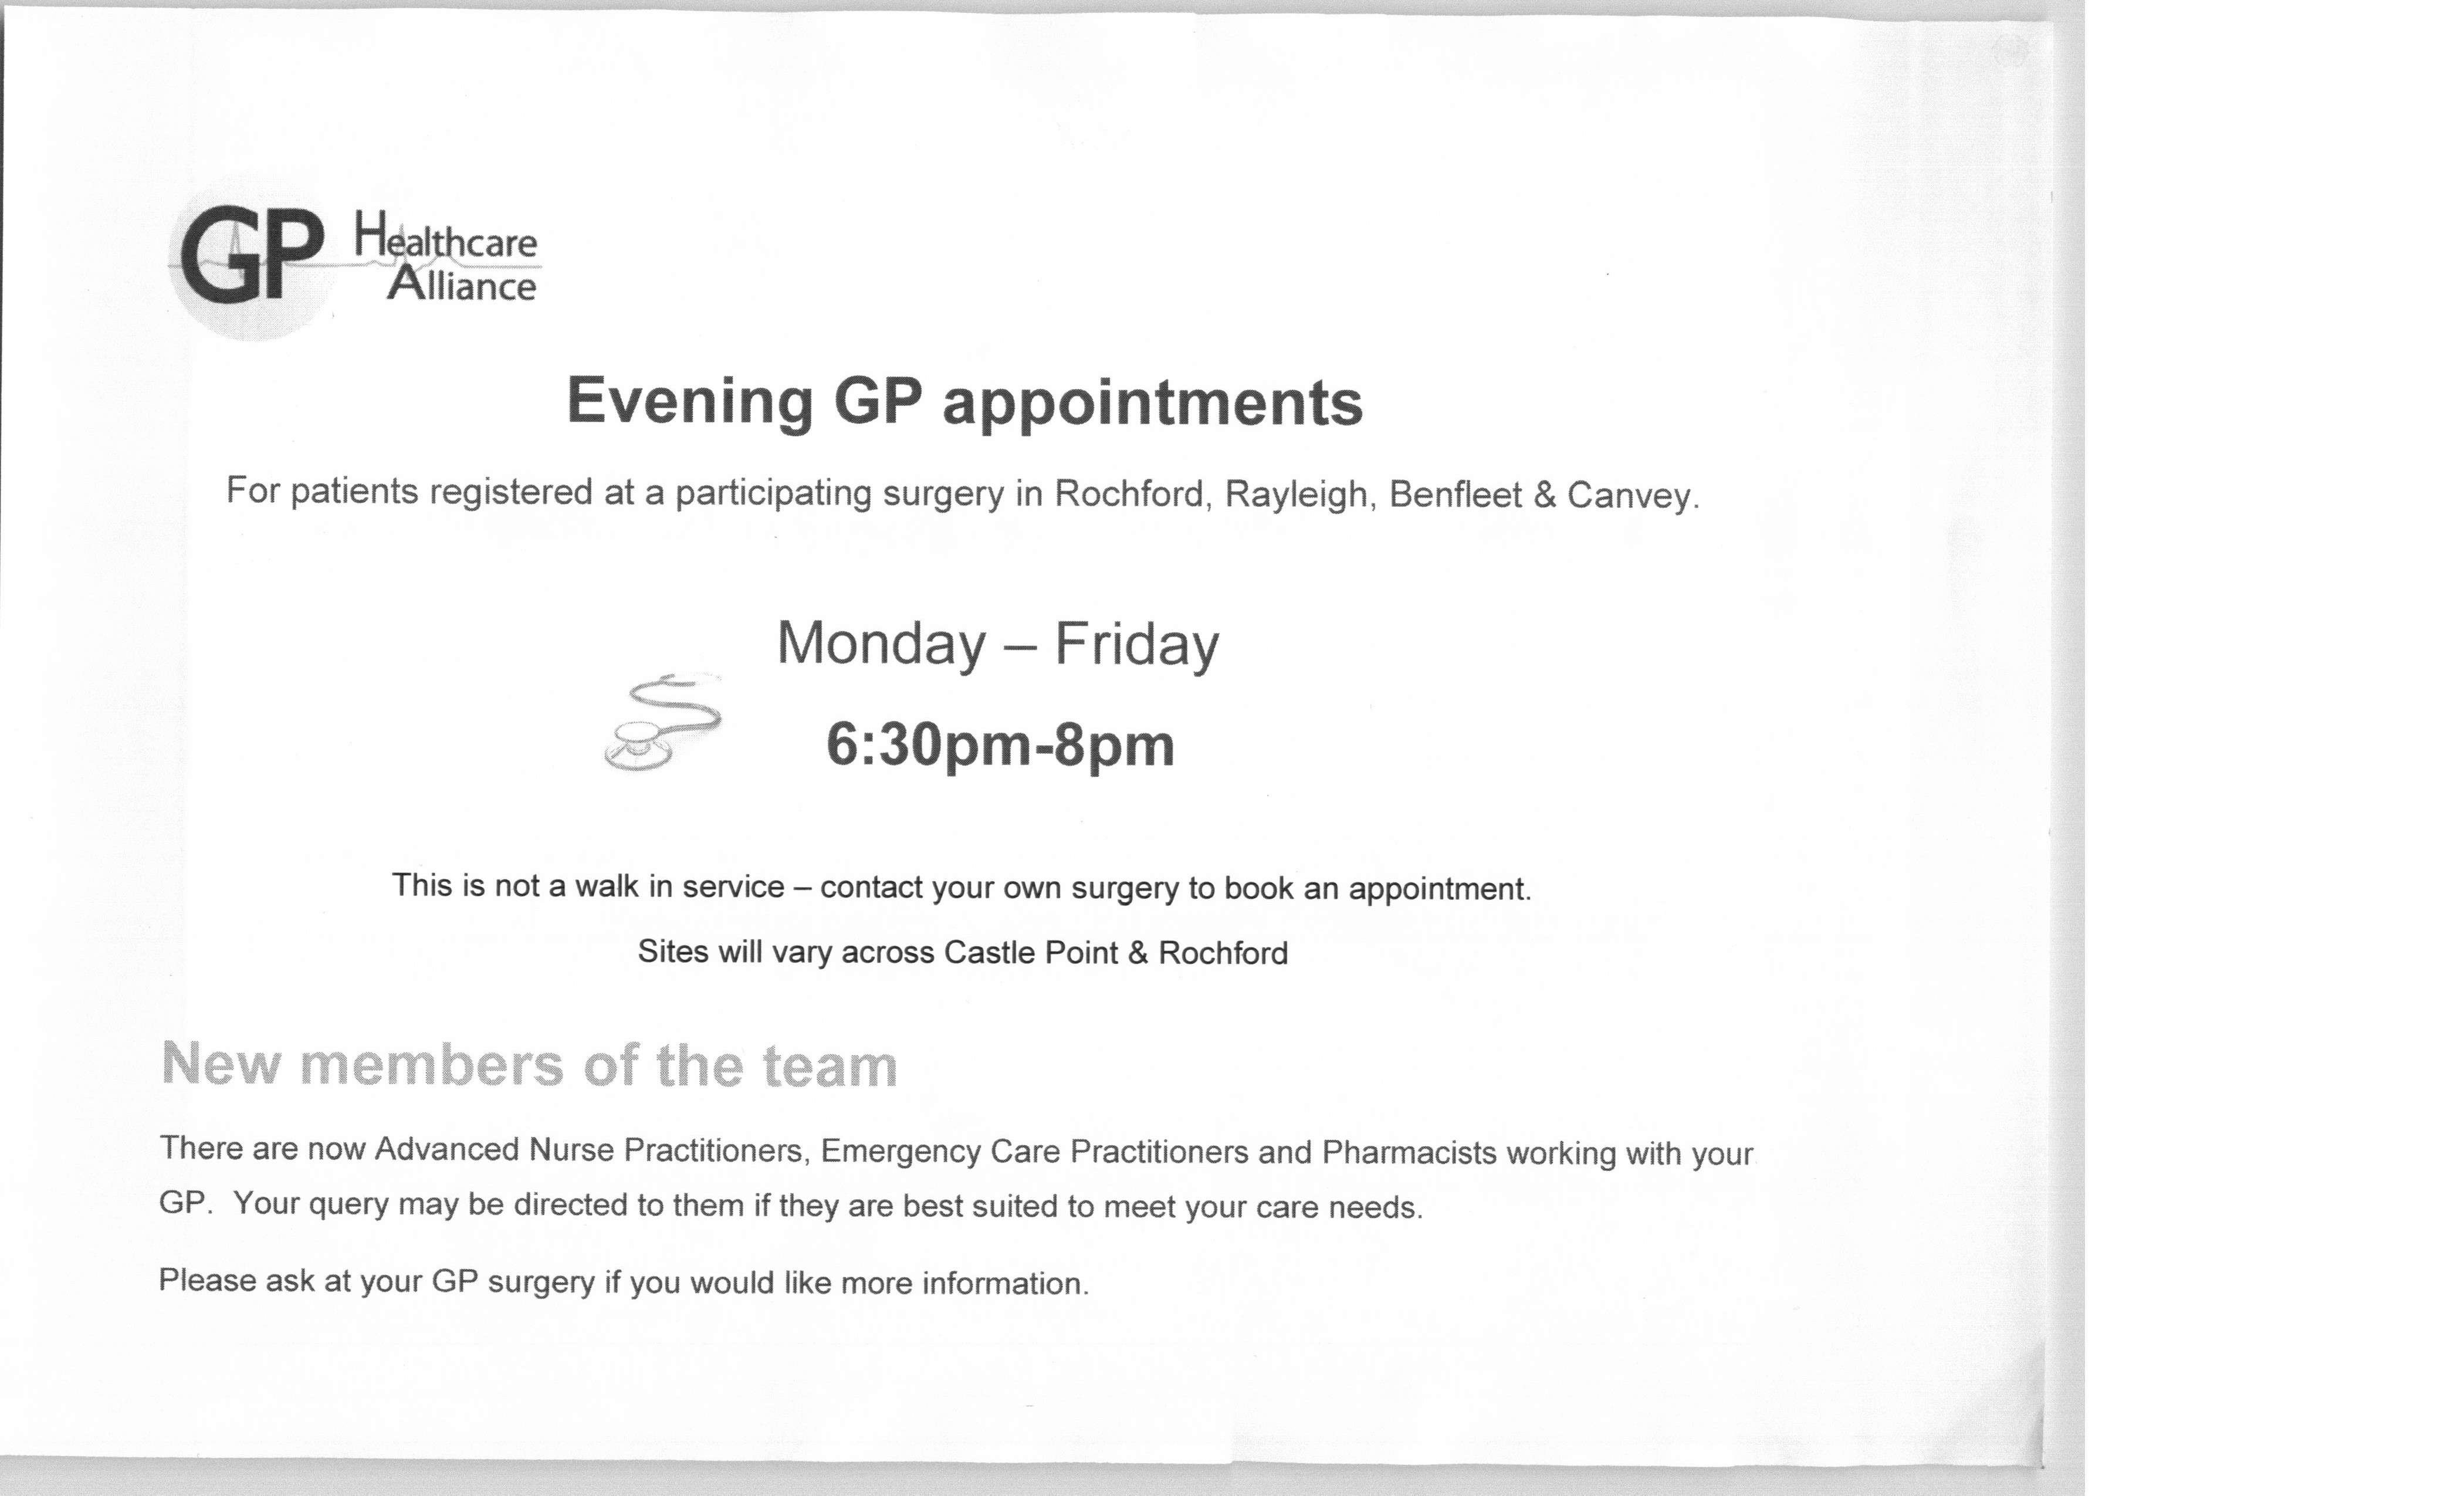 Evening GP appointments